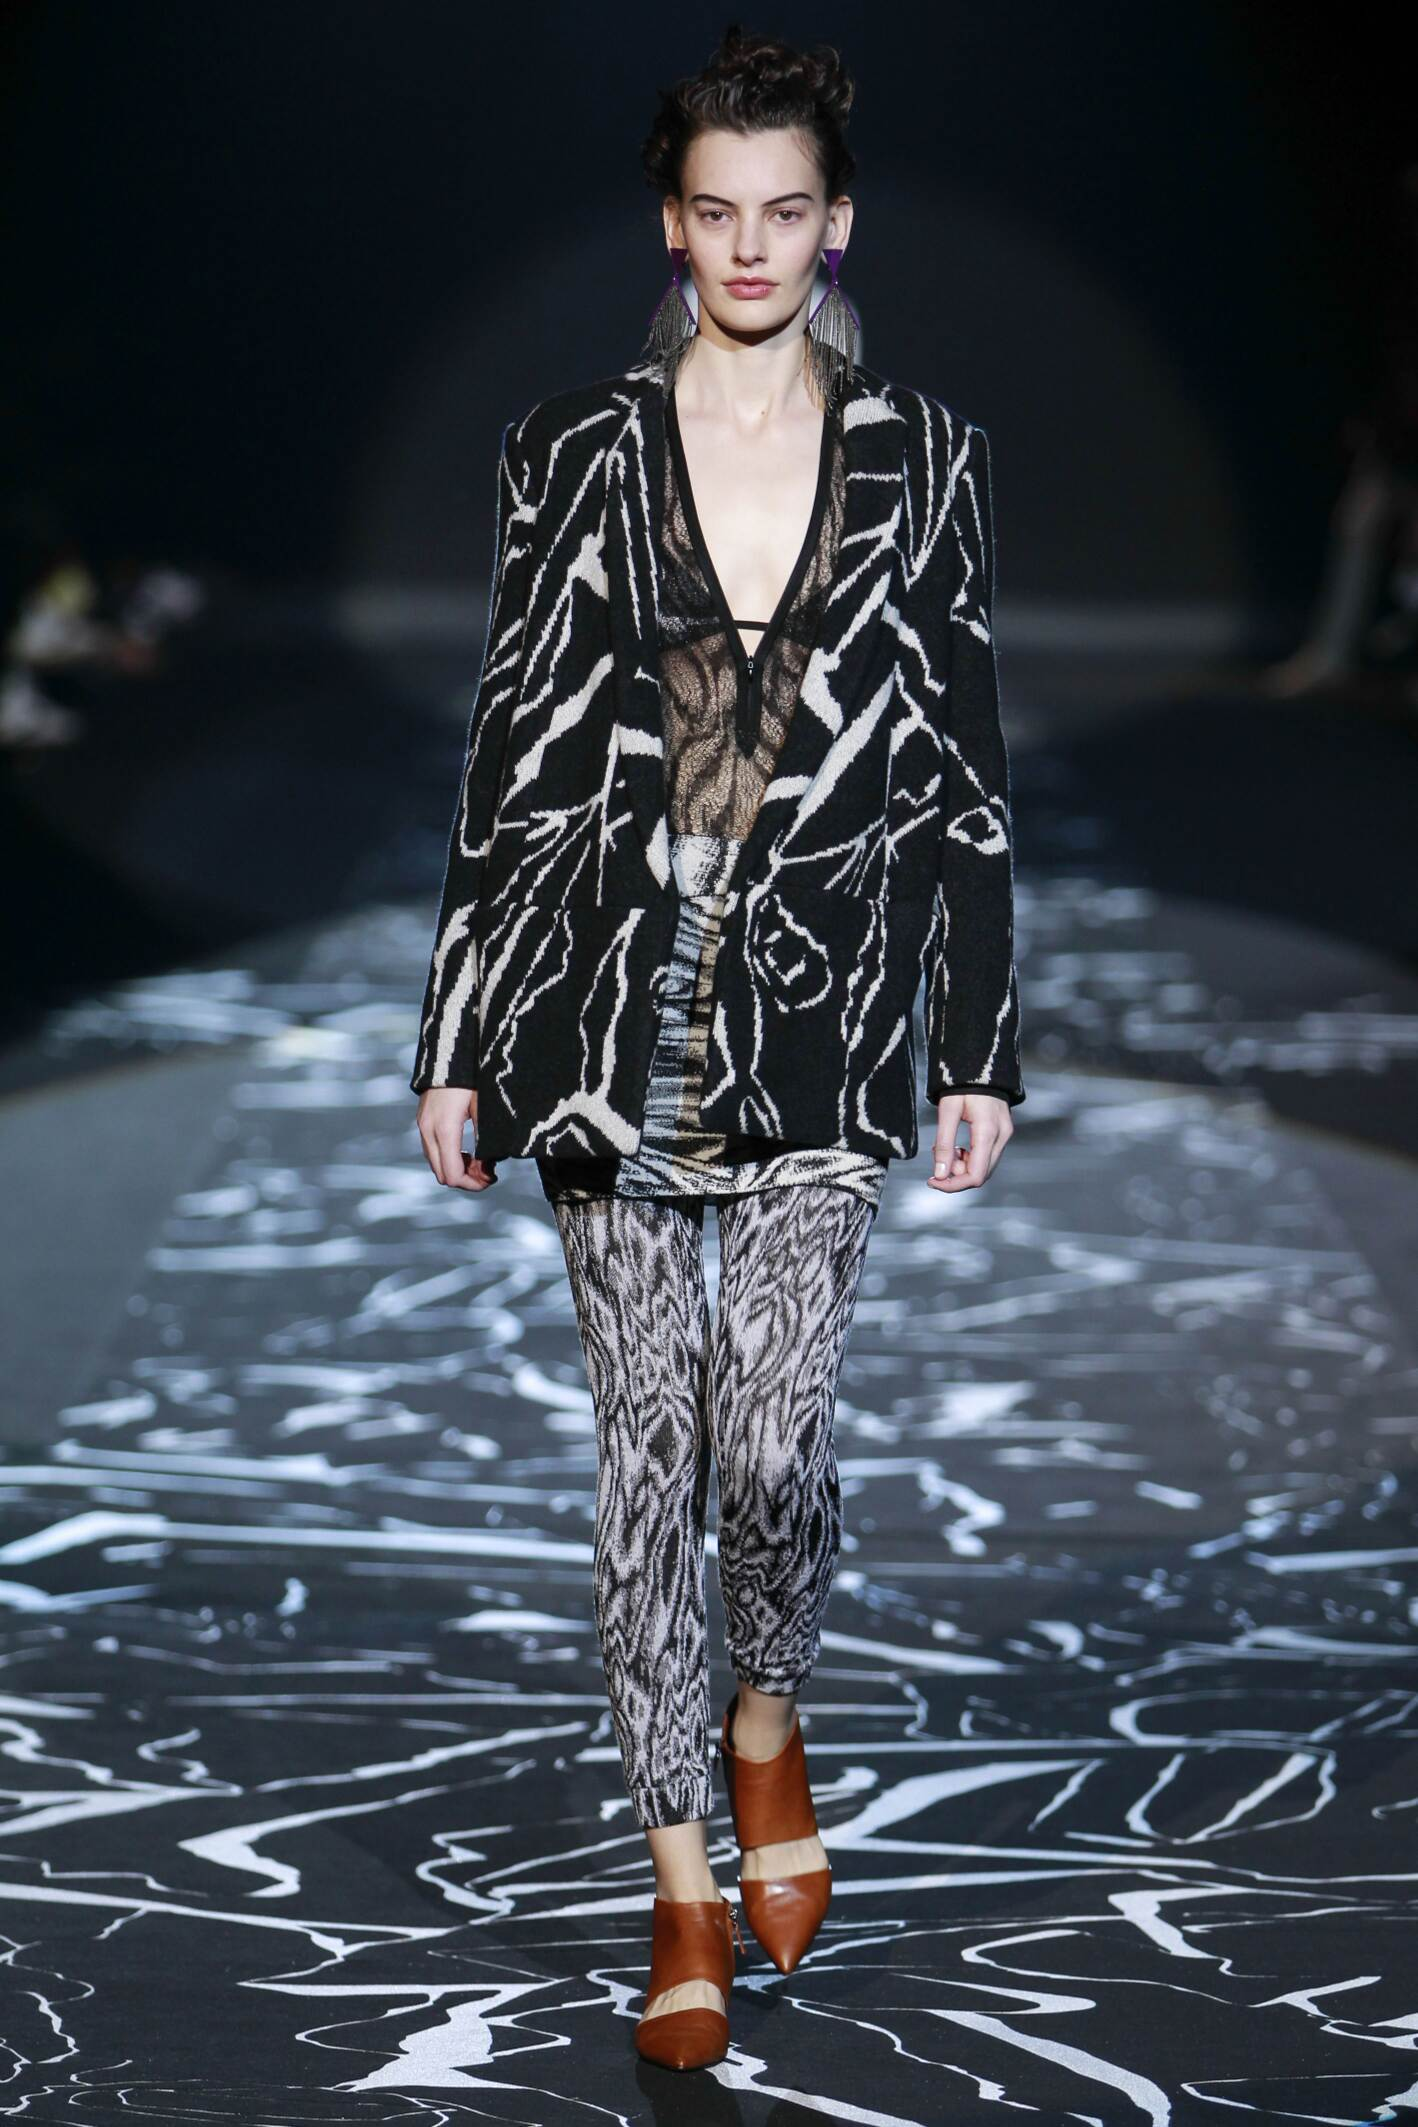 Catwalk Missoni Fall Winter 2015 16 Women's Collection Milan Fashion Week